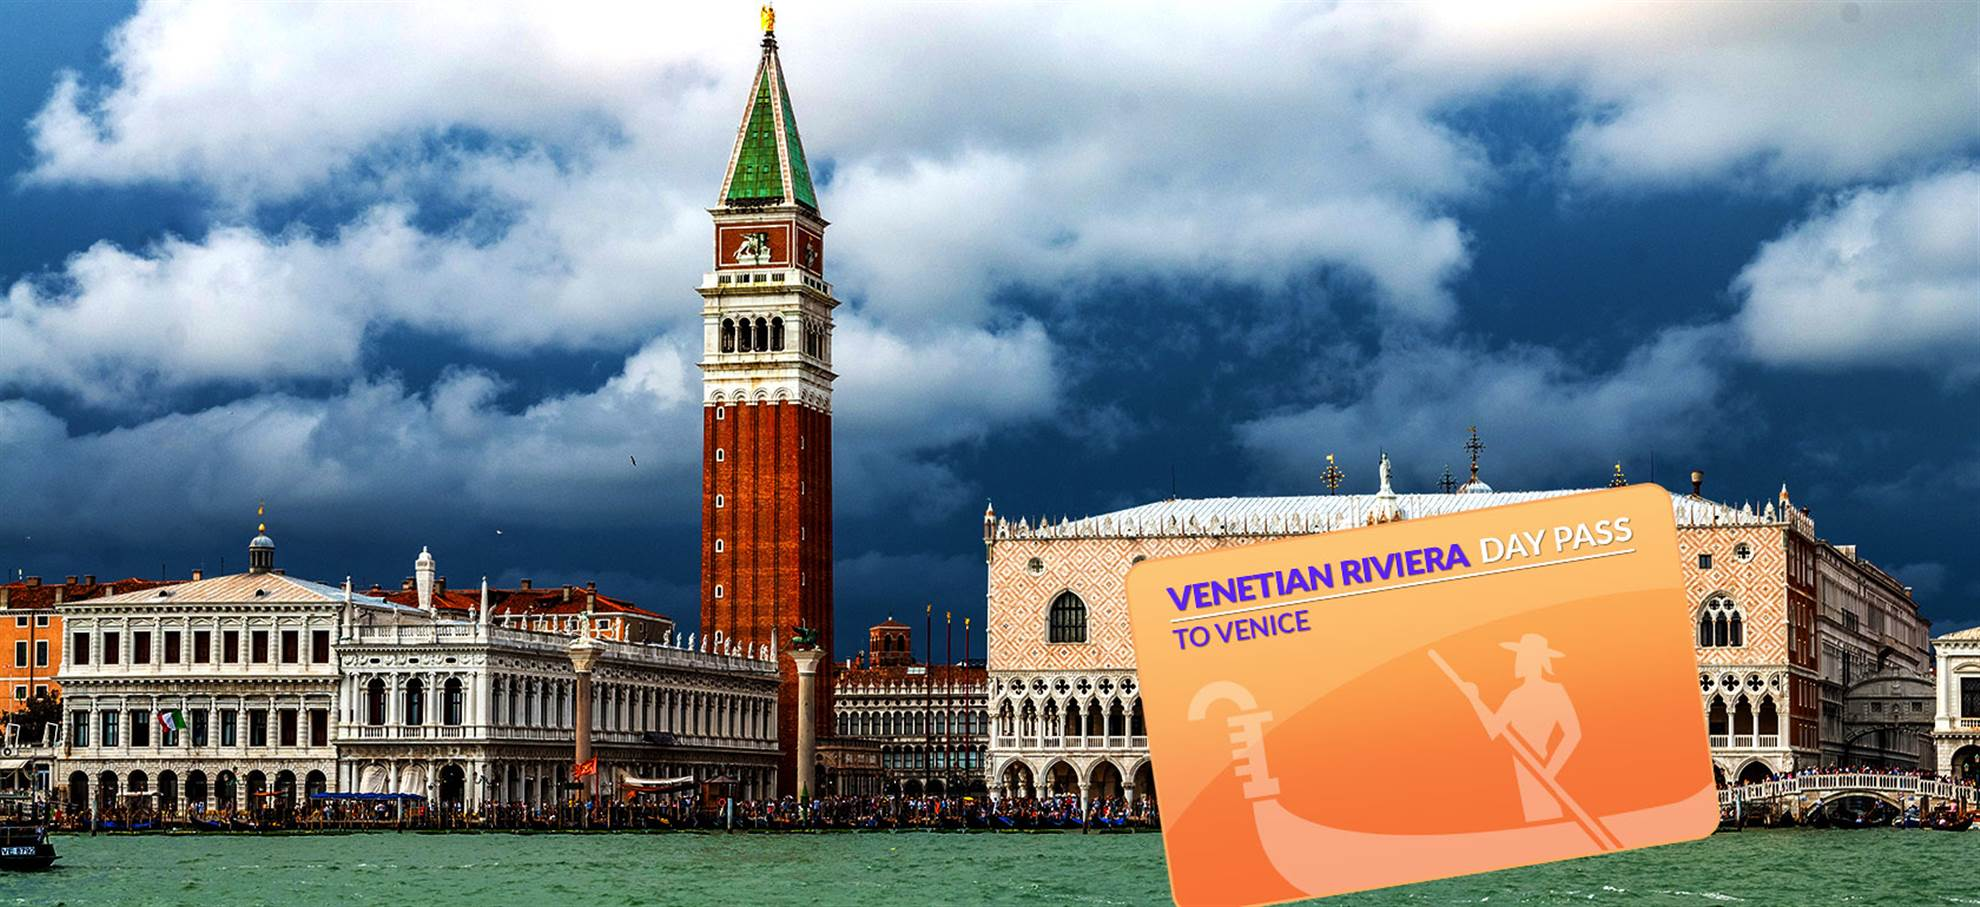 Venetian Riviera Day Pass to Venice